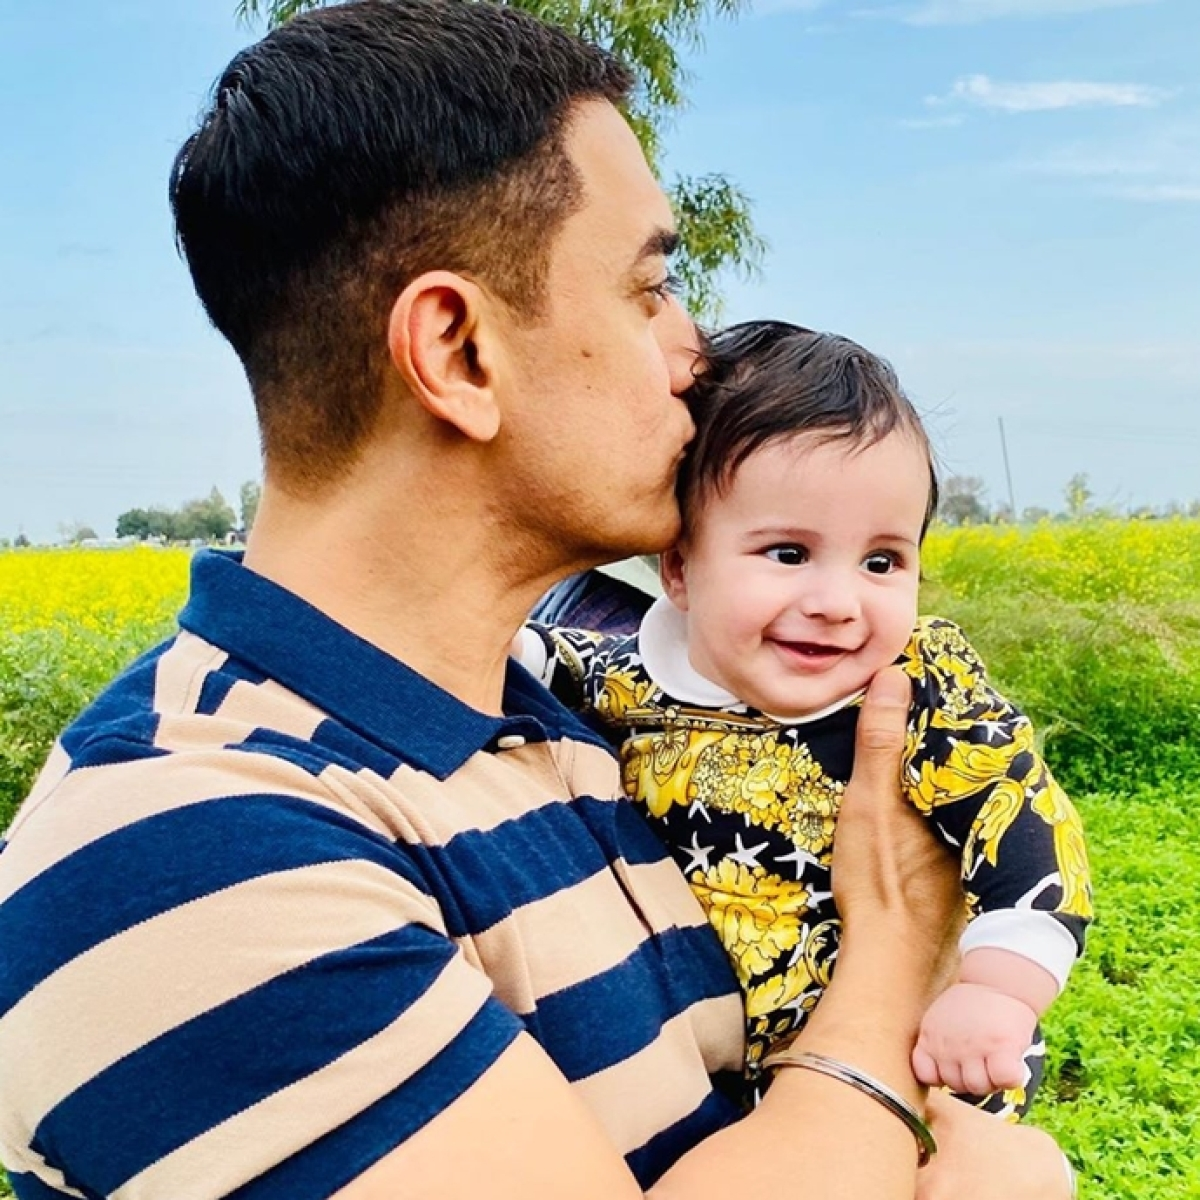 Aamir Khan's pic with Gippy Grewal's son is too cute to handle!